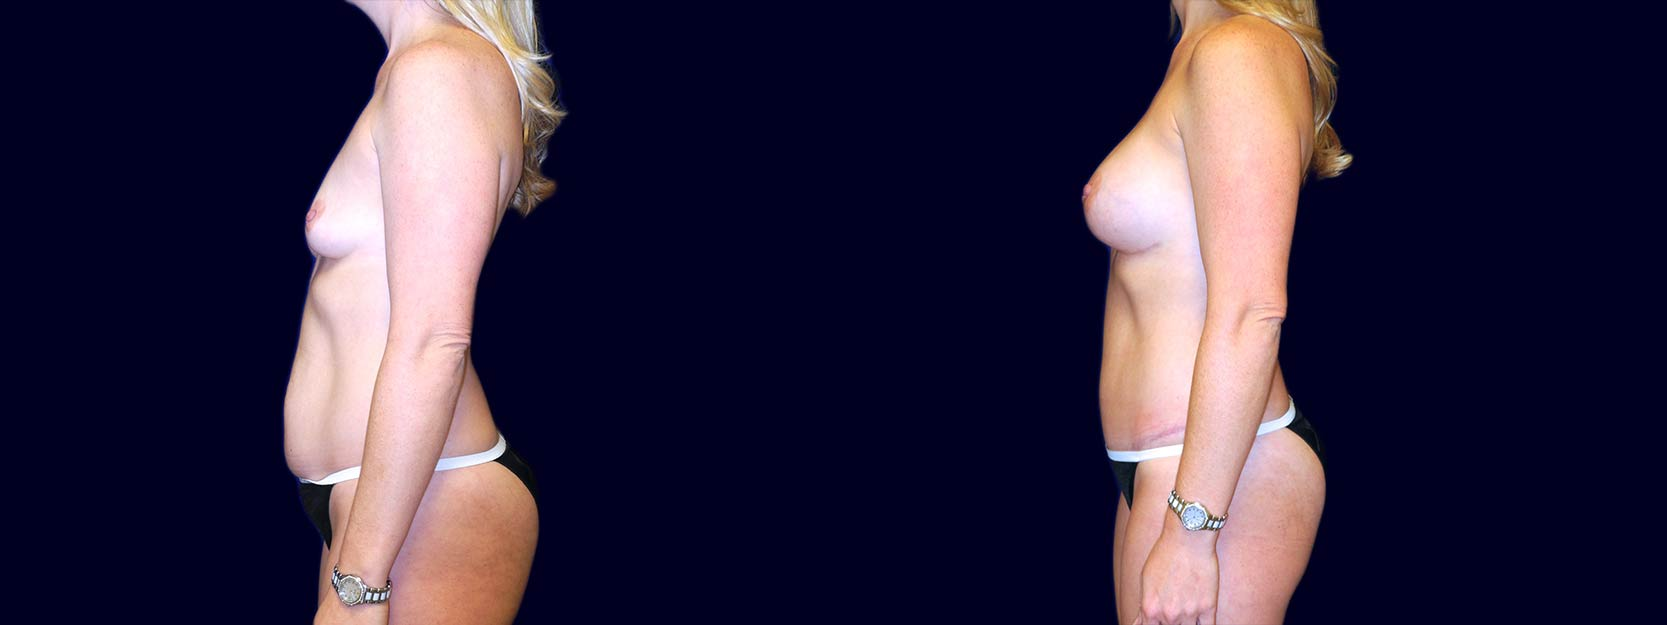 Left Profile View - Breast Augmentation and Tummy Tuck After Pregnancy